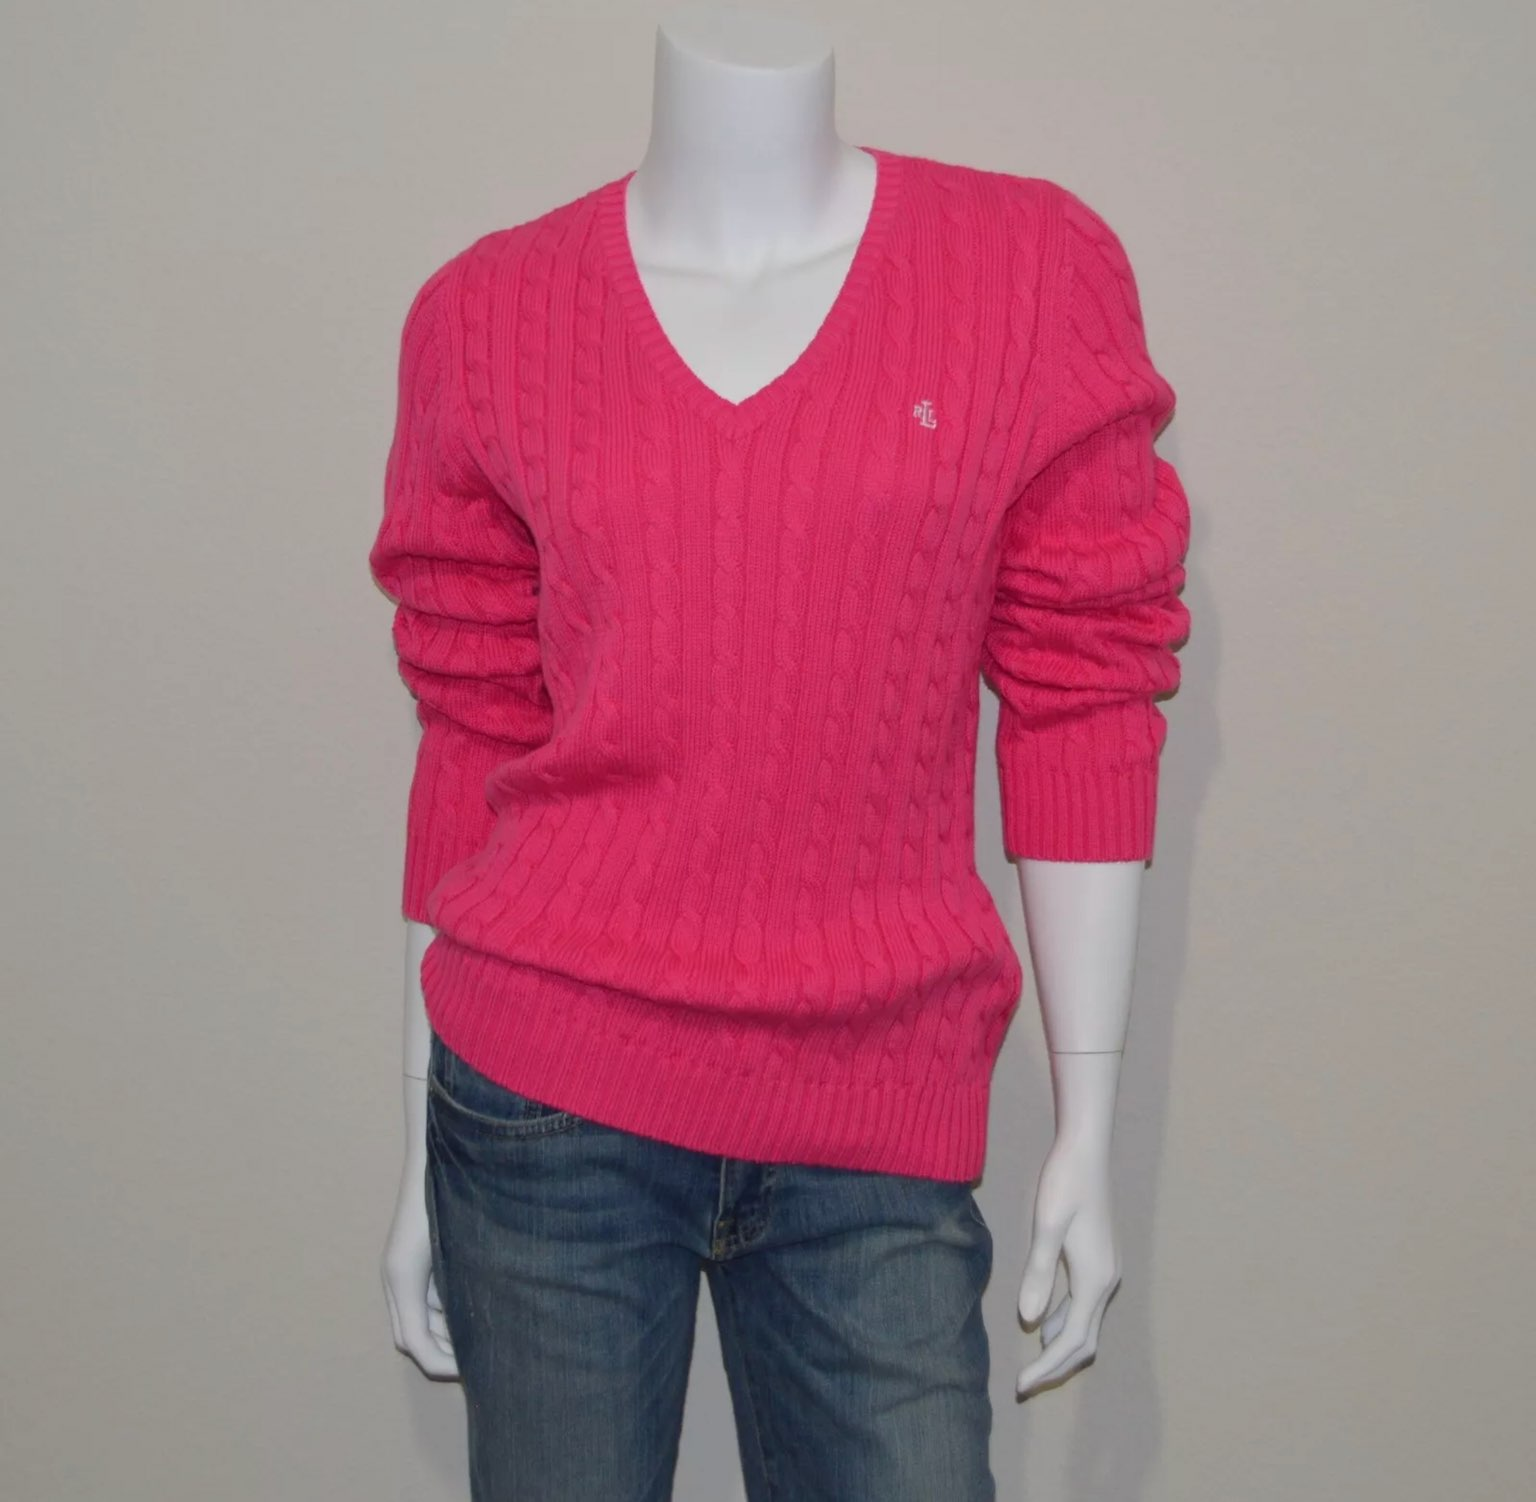 Lauren Ralph Lauren Cable Knit Sweater M - Mercari: BUY & SELL ...